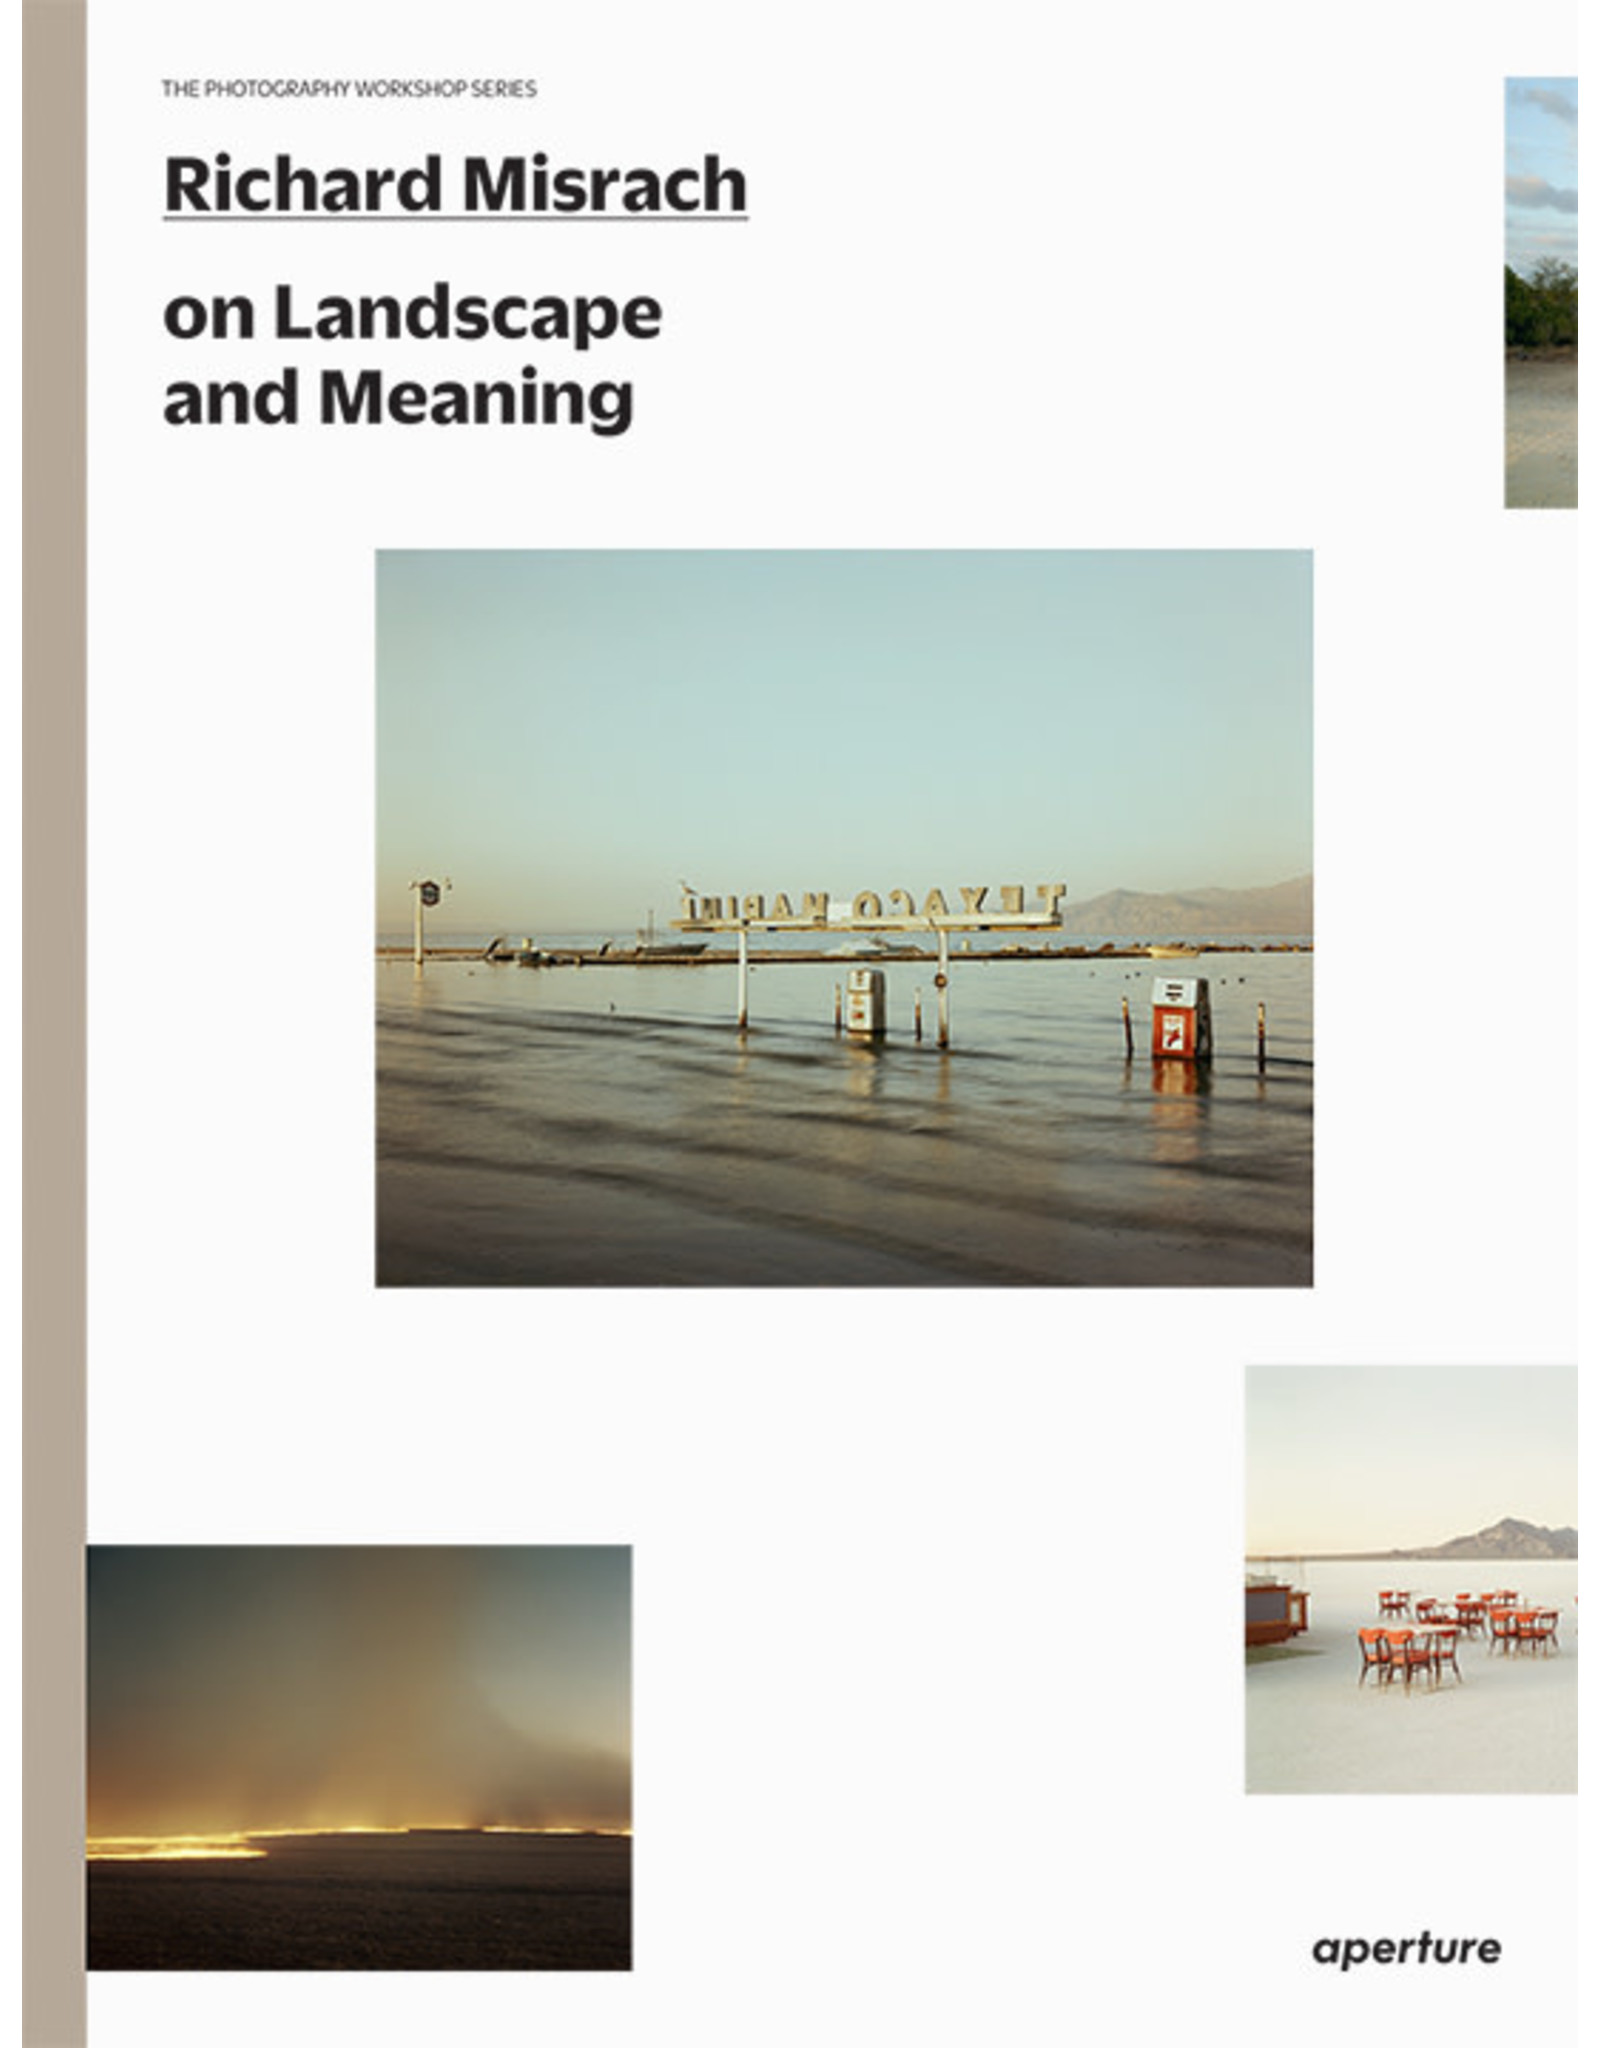 Richard Misrach on Landscape and Meaning (The Photography Workshop Series)